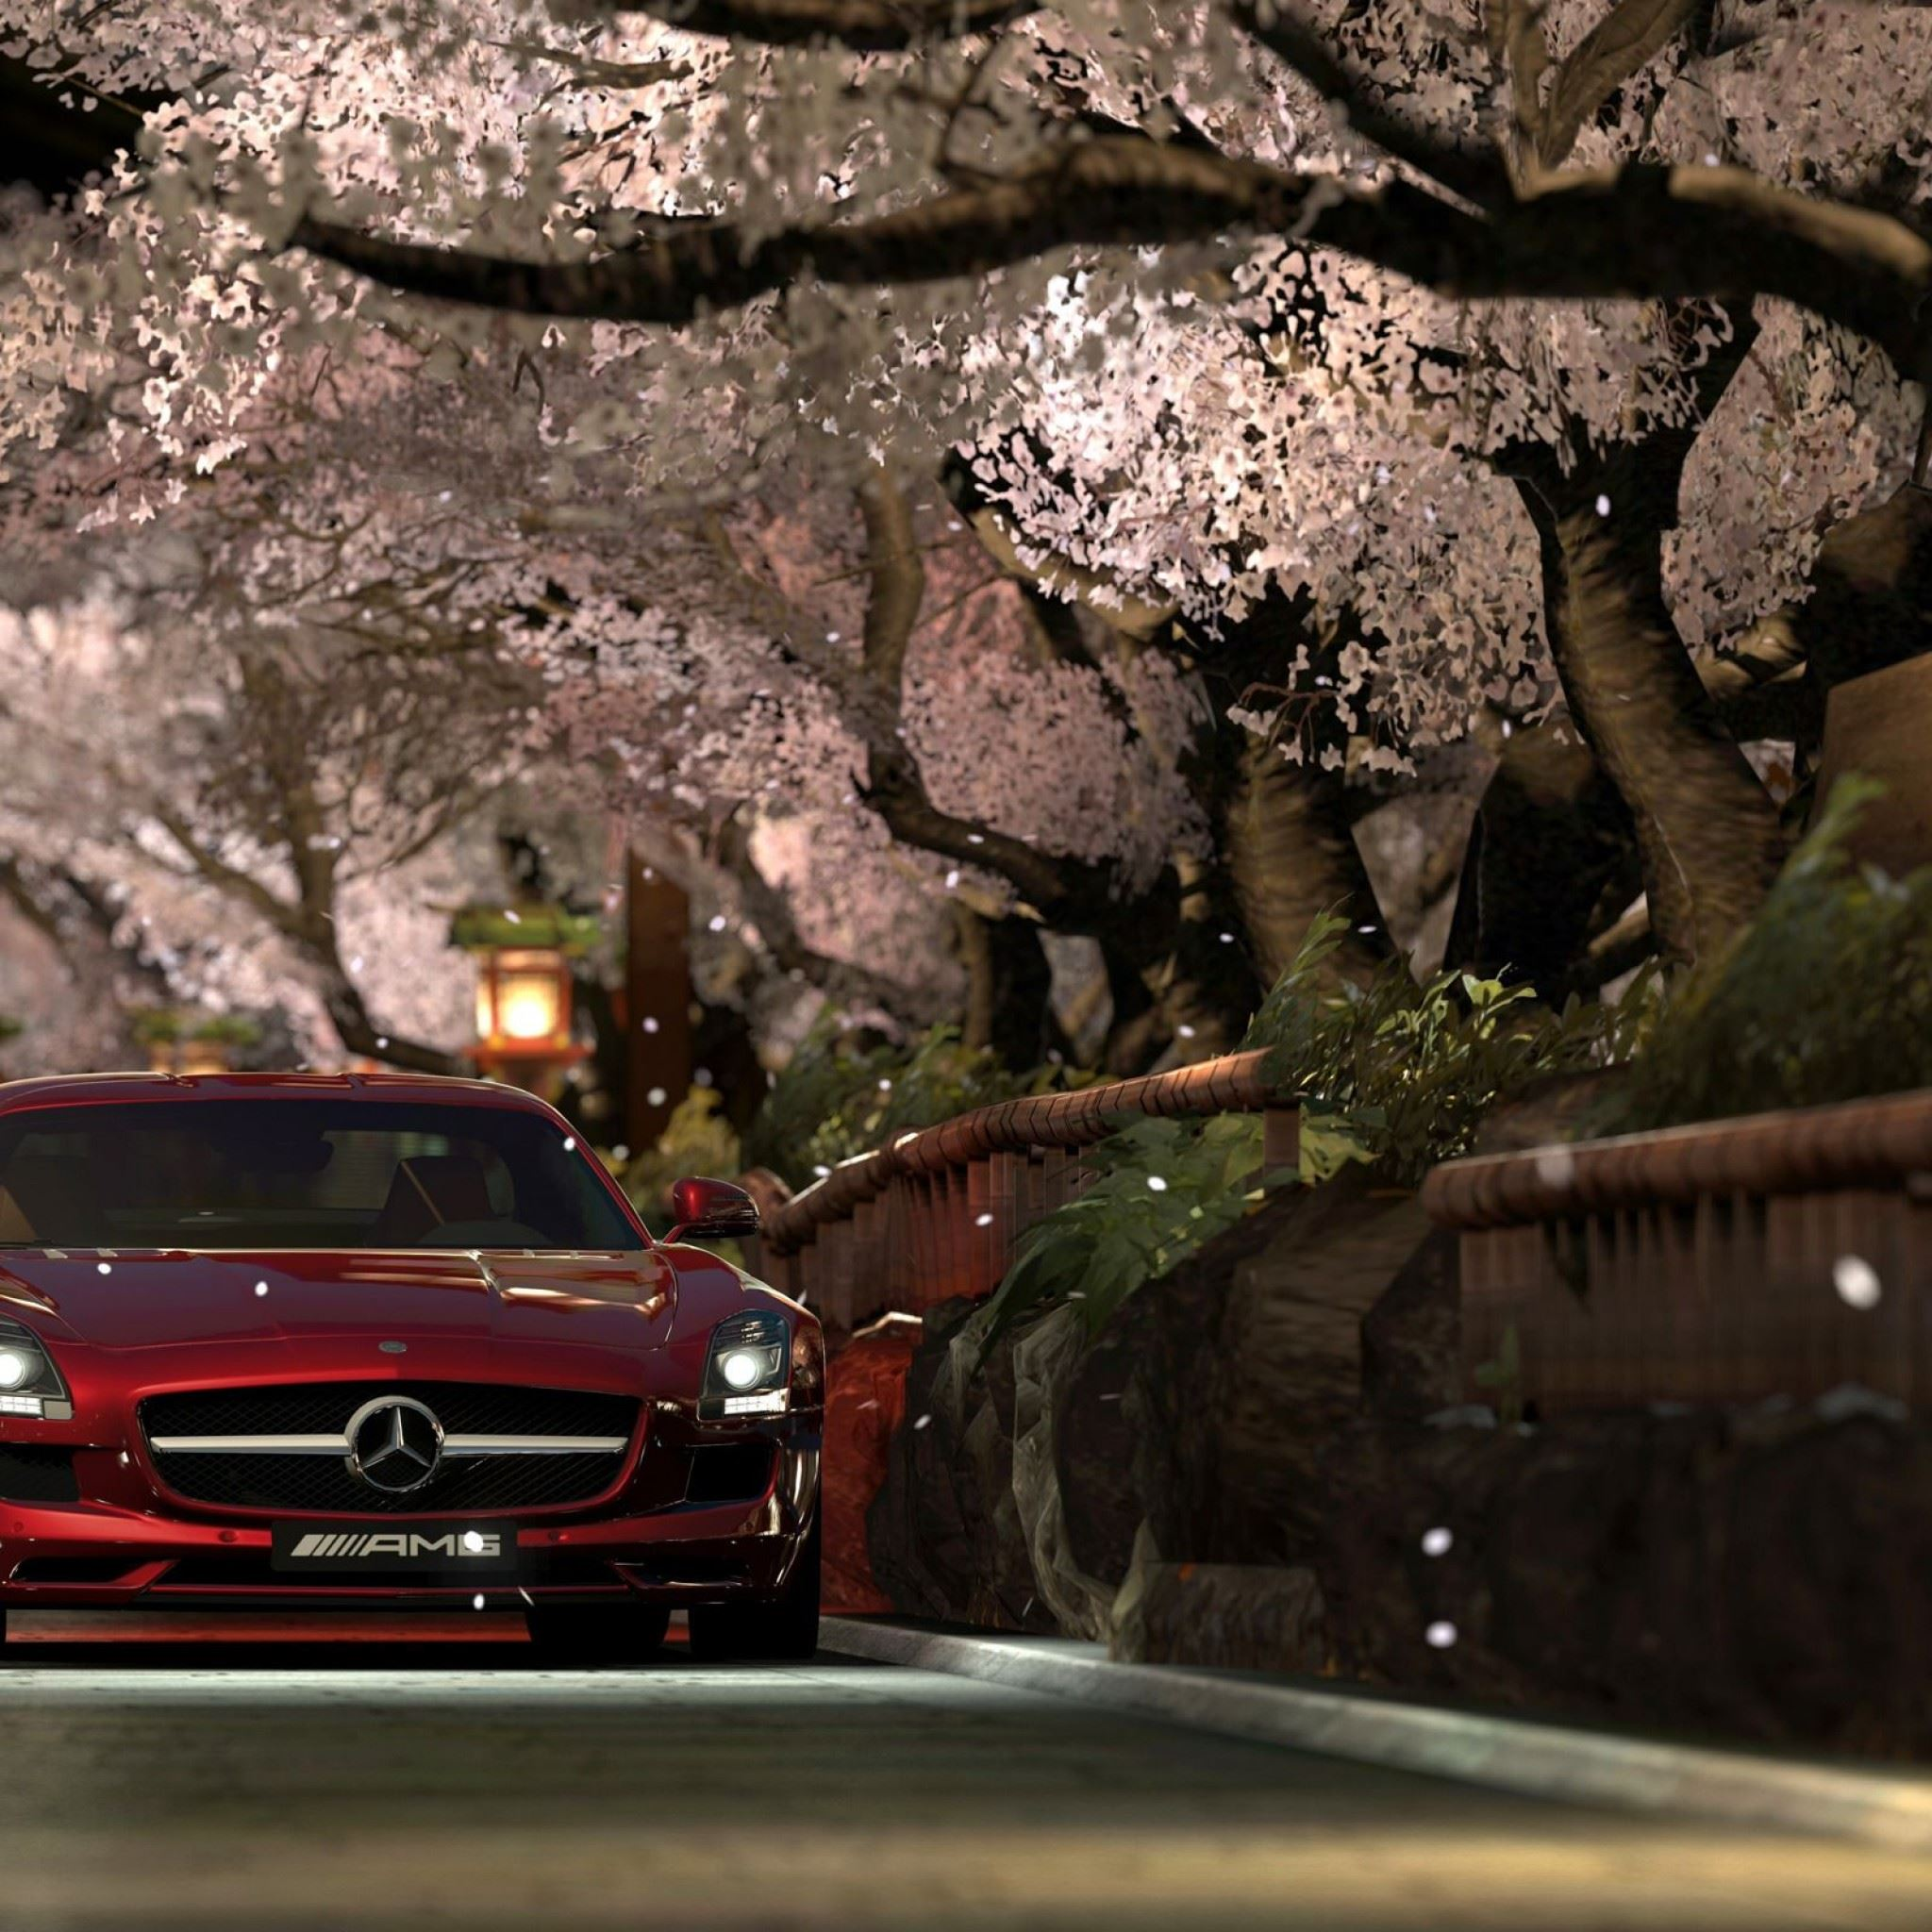 Mercedes Benz Sls Amg Red Night iPad Air wallpaper